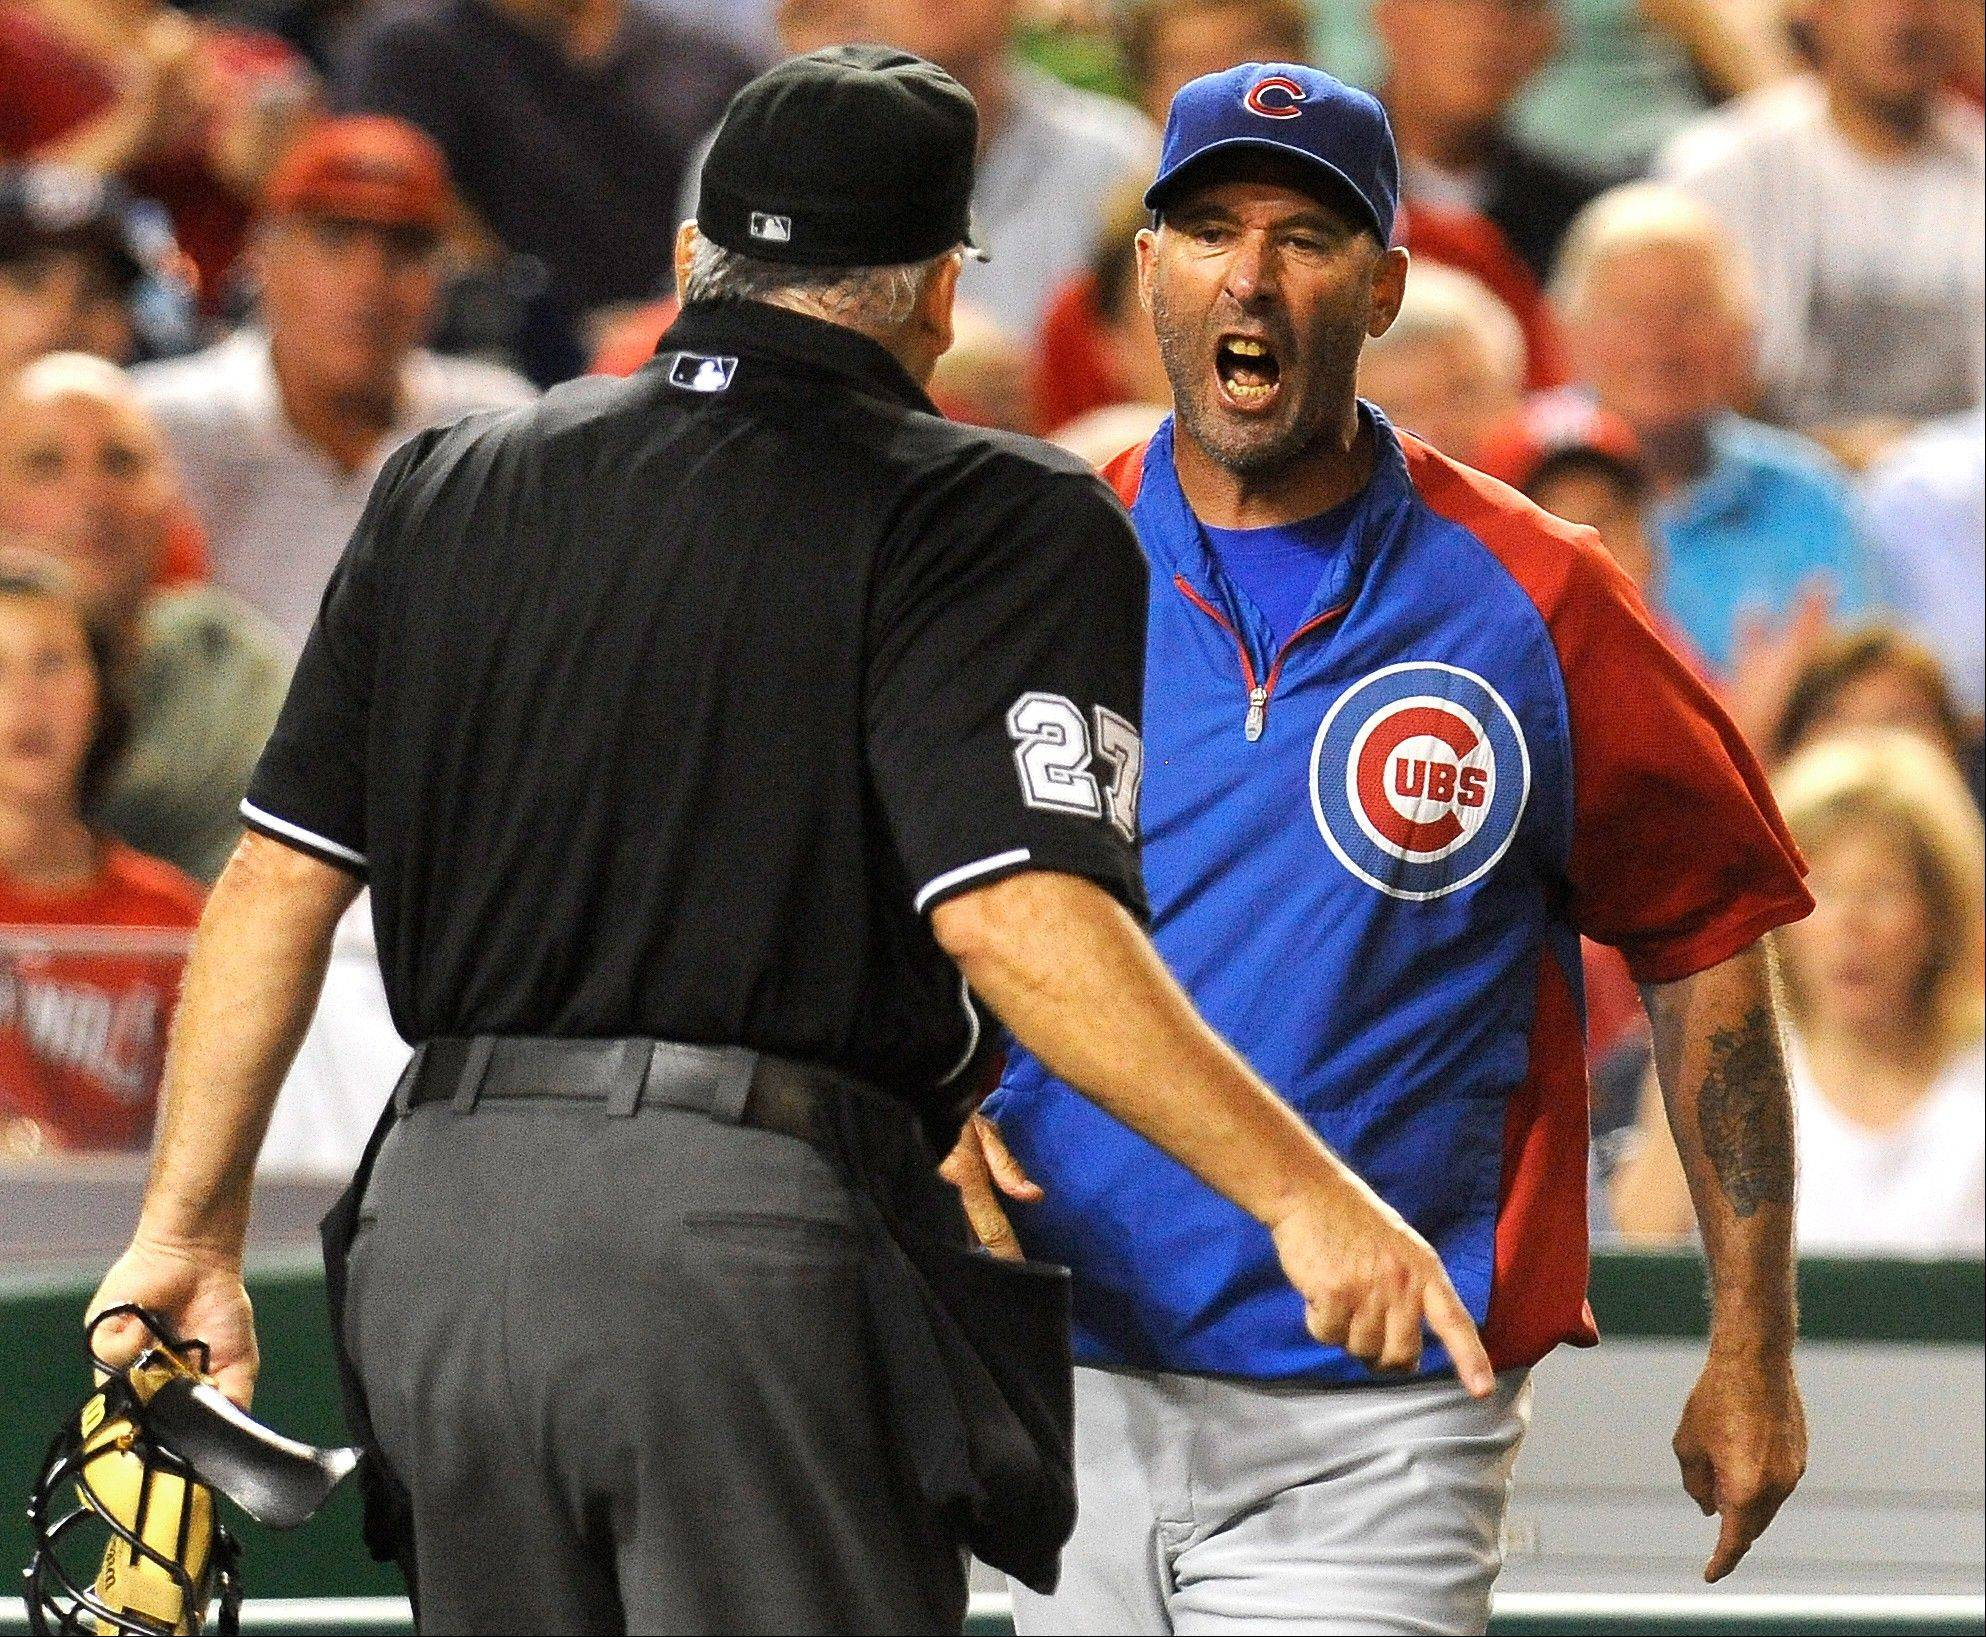 Chicago Cubs manager Dale Sveum, right, confronts home plate umpire Larry Vanover after being thrown out of a baseball game in the fifth inning against the Washington Nationals at Nationals Park, Wednesday, Sept. 5, 2012, in Washington. (AP Photo/Richard Lipski)